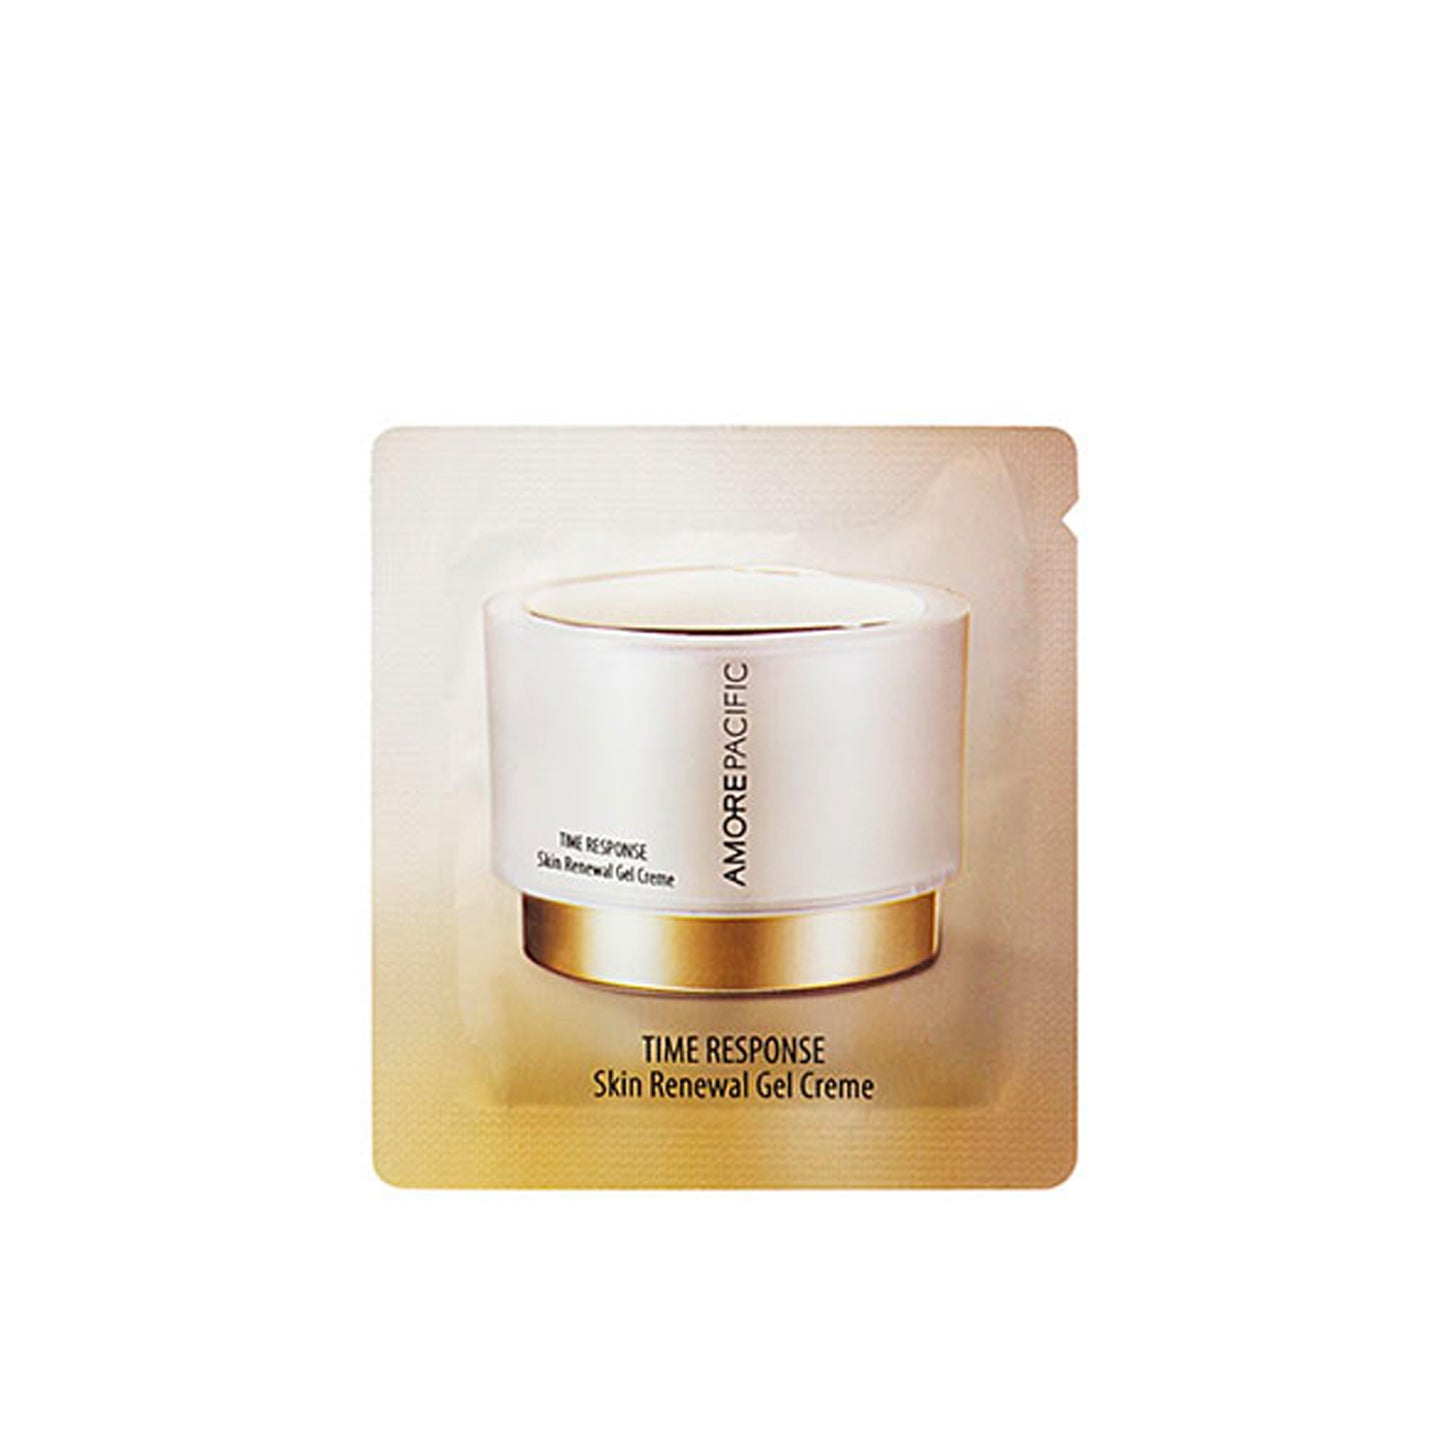 TIME RESPONSE Skin Renewal Gel Creme (1ml)